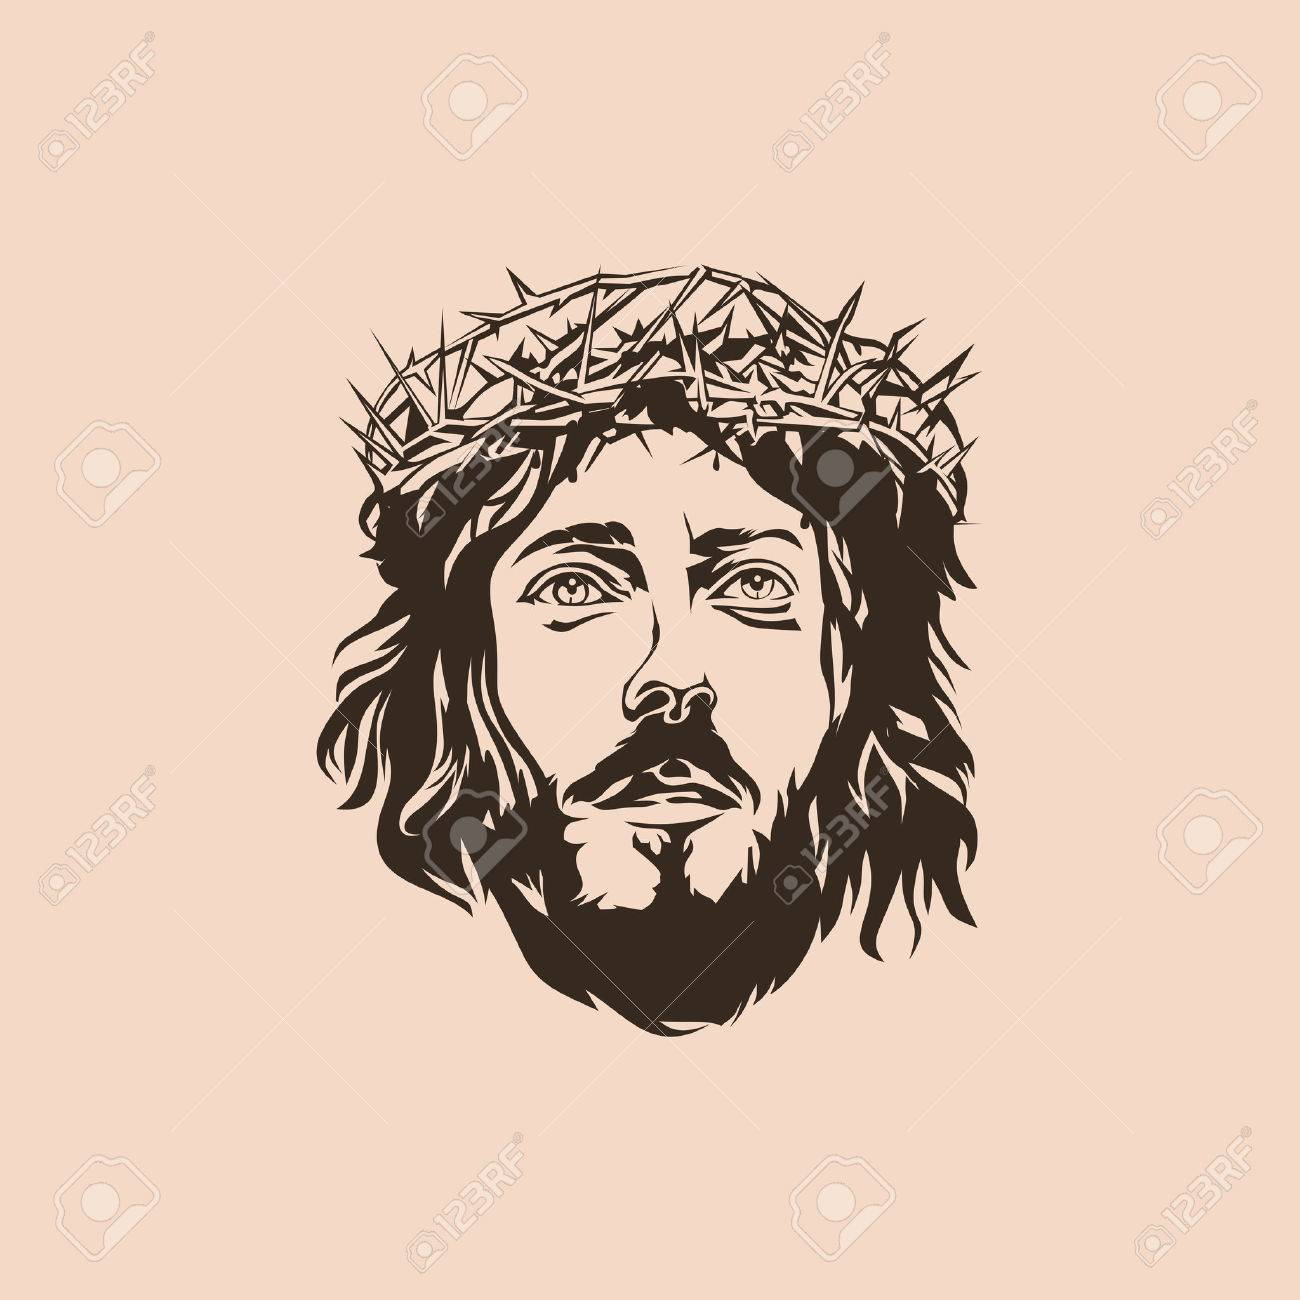 1300x1300 Jesus. Crown Of Thorns. Hand Drawn. Royalty Free Cliparts, Vectors